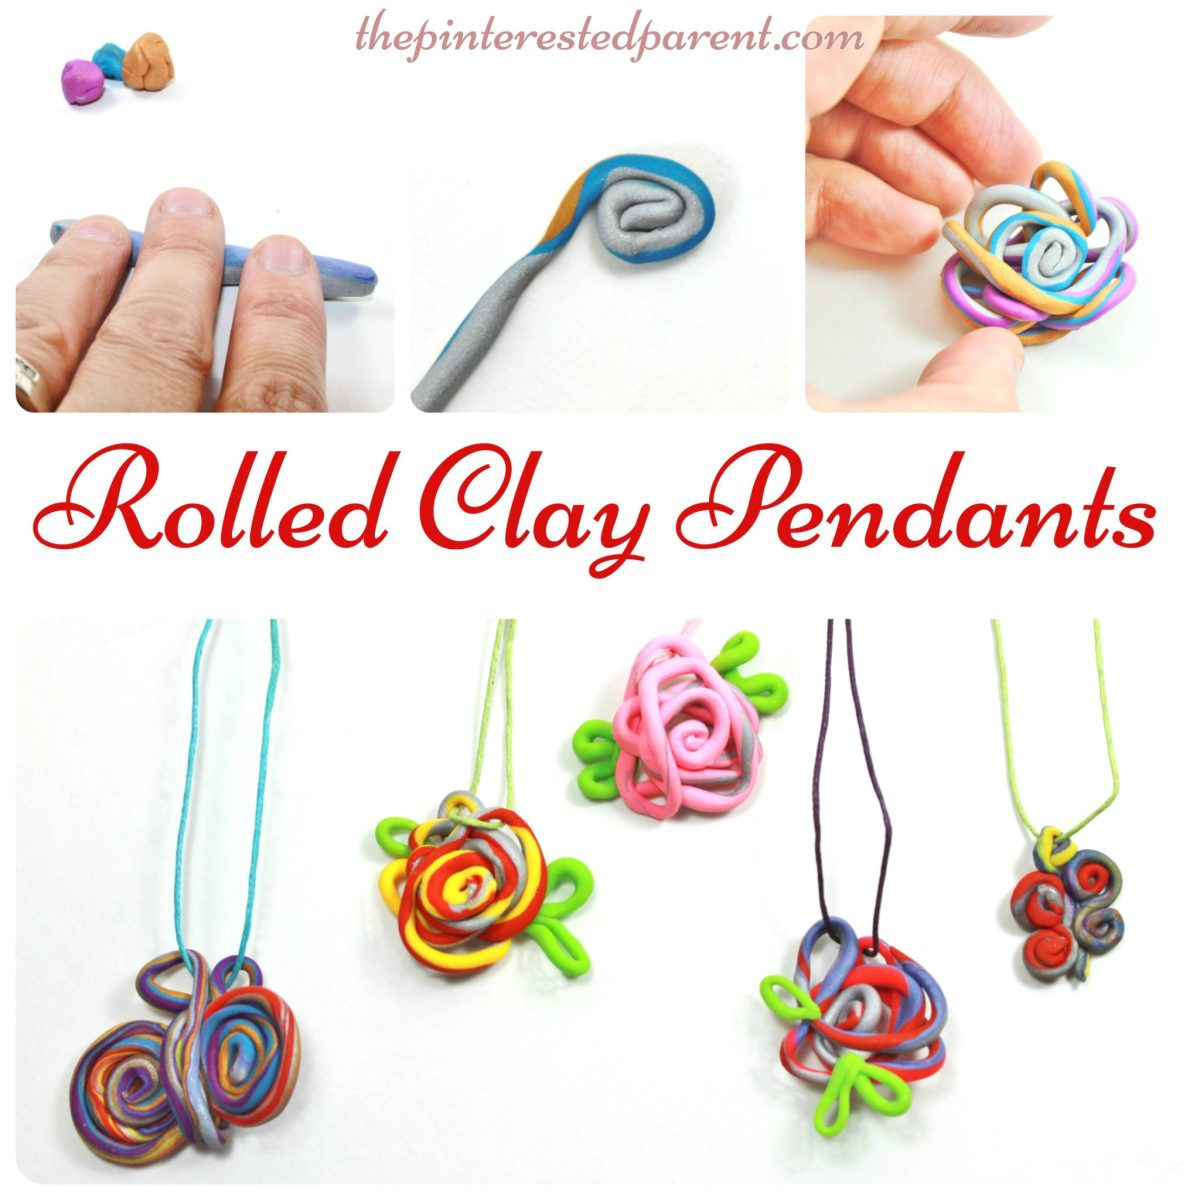 Roll & Wrapped Clay Pendants